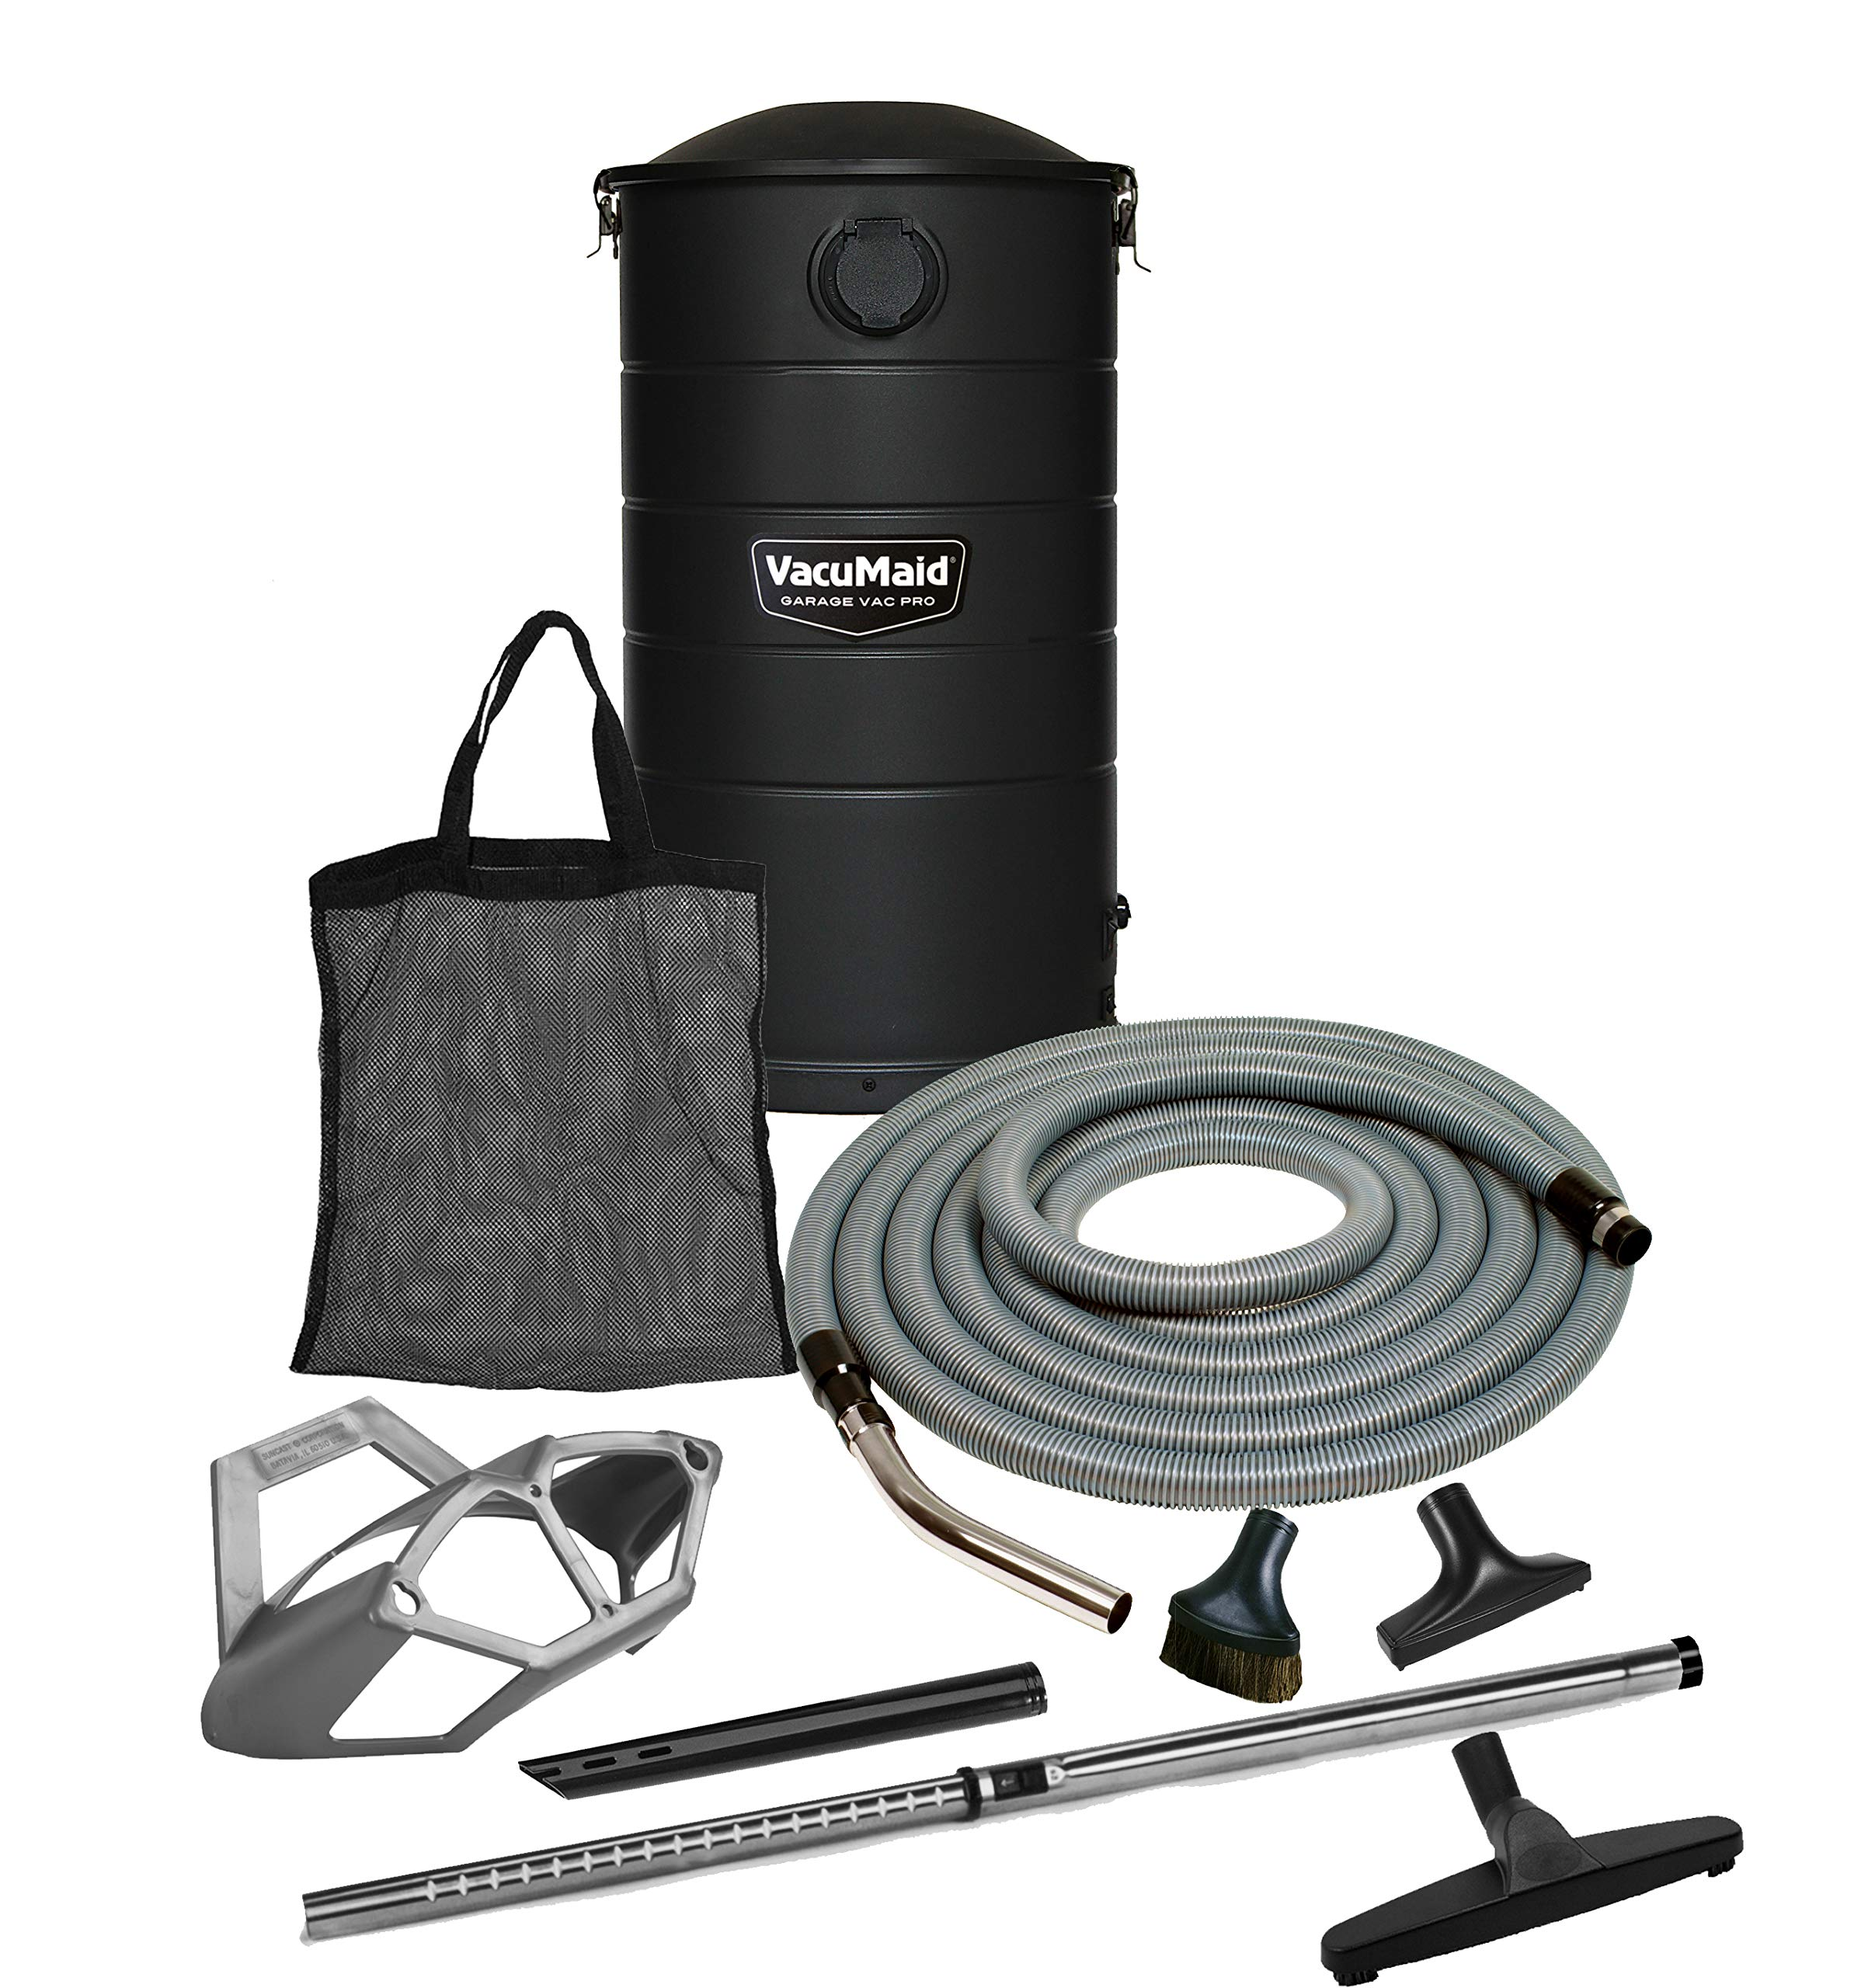 VacuMaid GV50BLKPRO Professional Wall Mounted Garage and Car Vacuum with 50 ft. Hose and Tools by VacuMaid